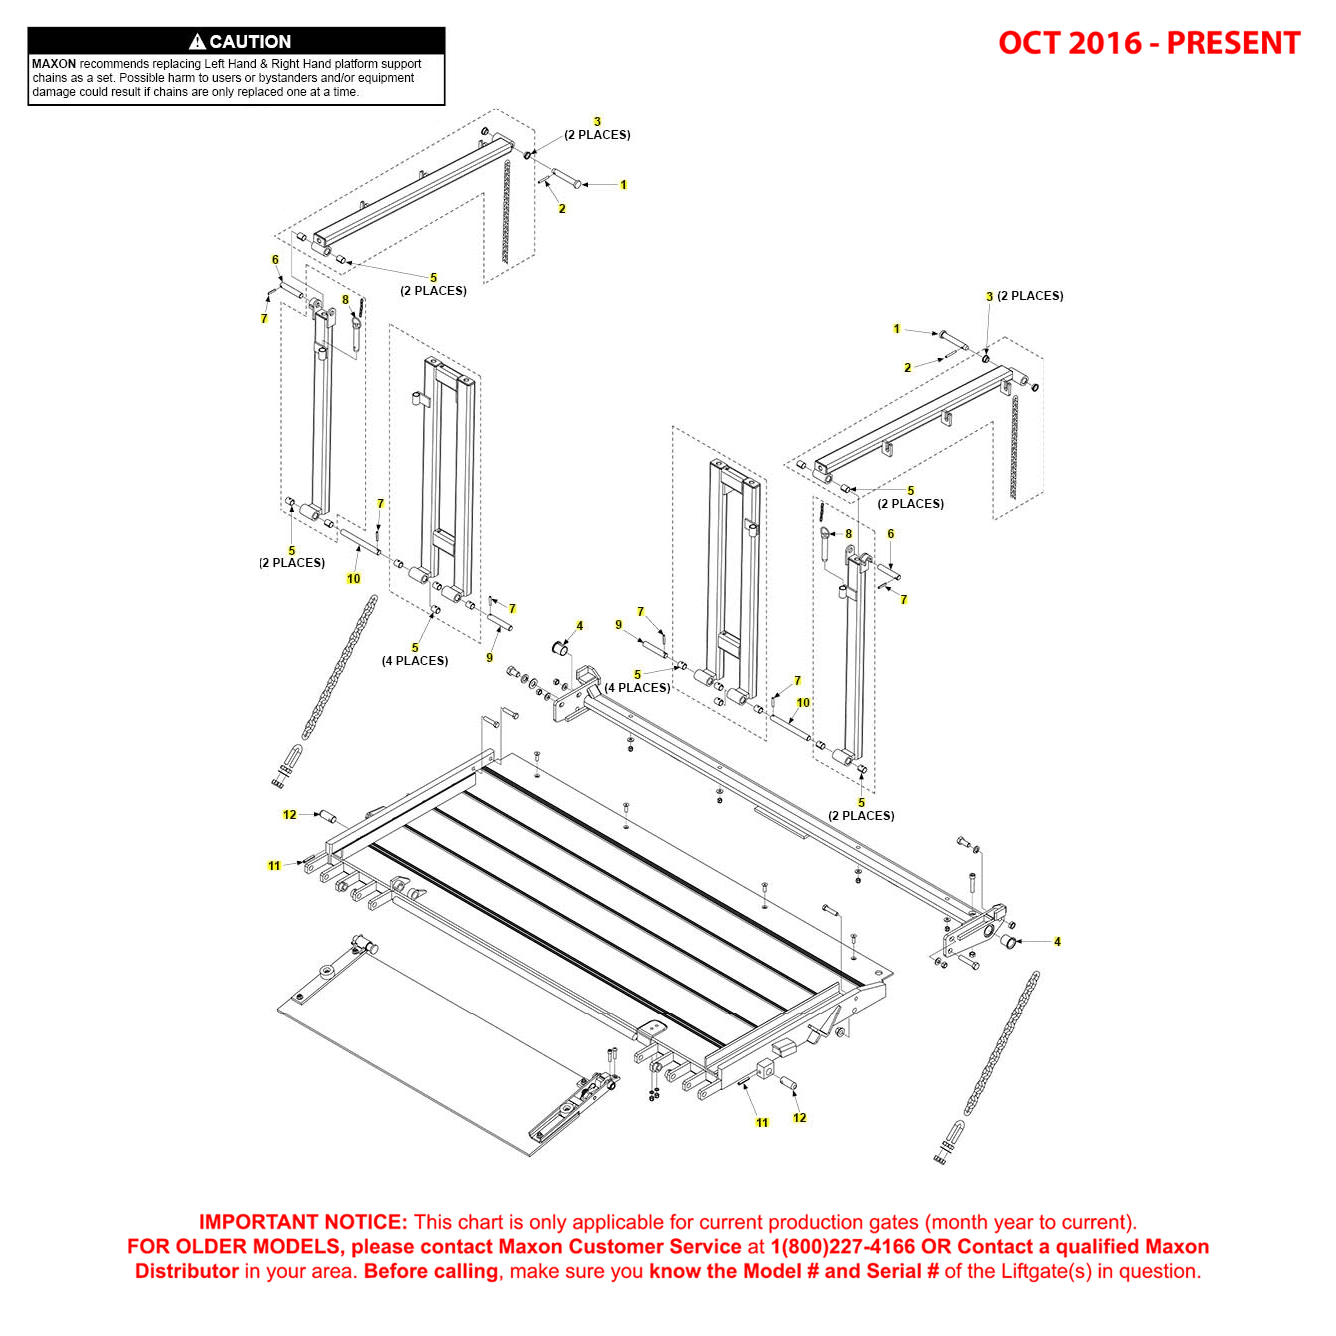 BMR-CS (Oct 2016 - Present) Aluminum Platform Assembly With Railings And Aluminum Retention Ramp Pins And Bushings